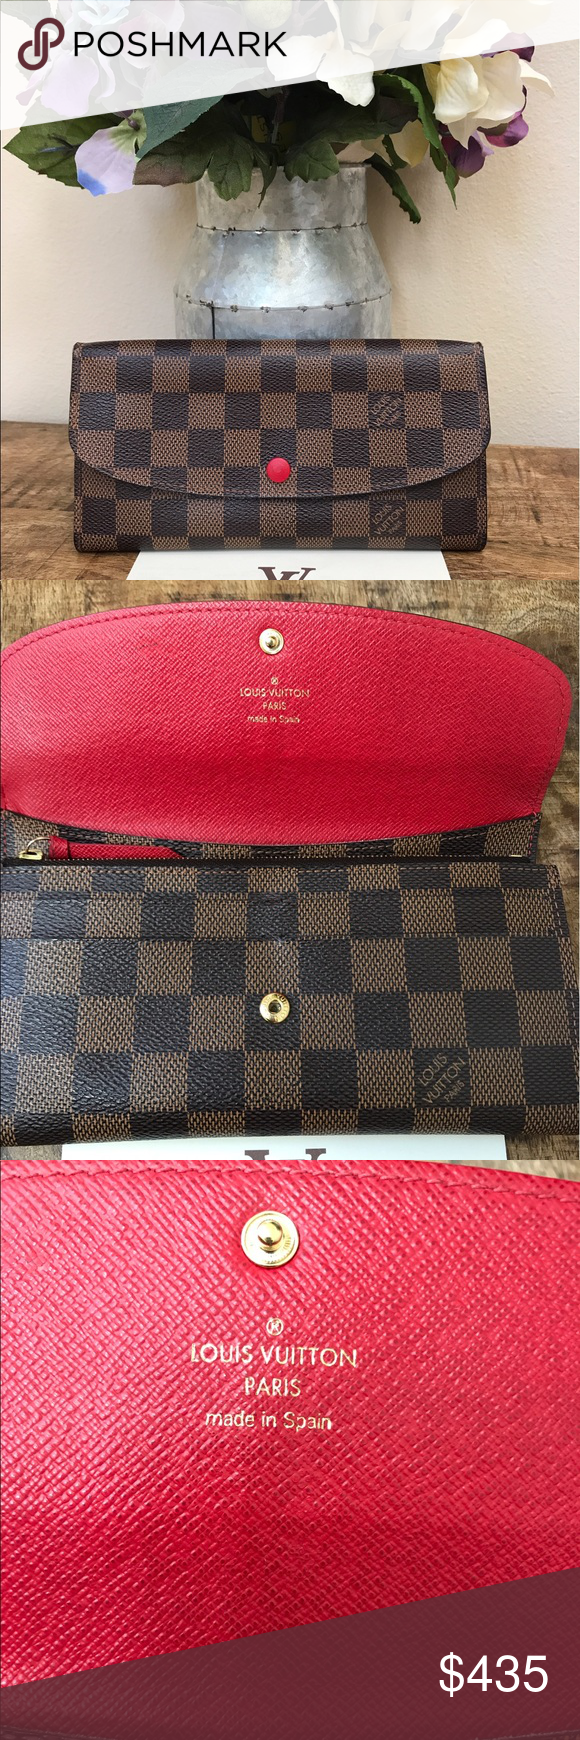 1f3587845f08 Authentic Louis Vuitton Emilie Wallet Damier Great condition! Glazing can  be reglazed at LV. Button and card slots in perfect condition. 385  on p.